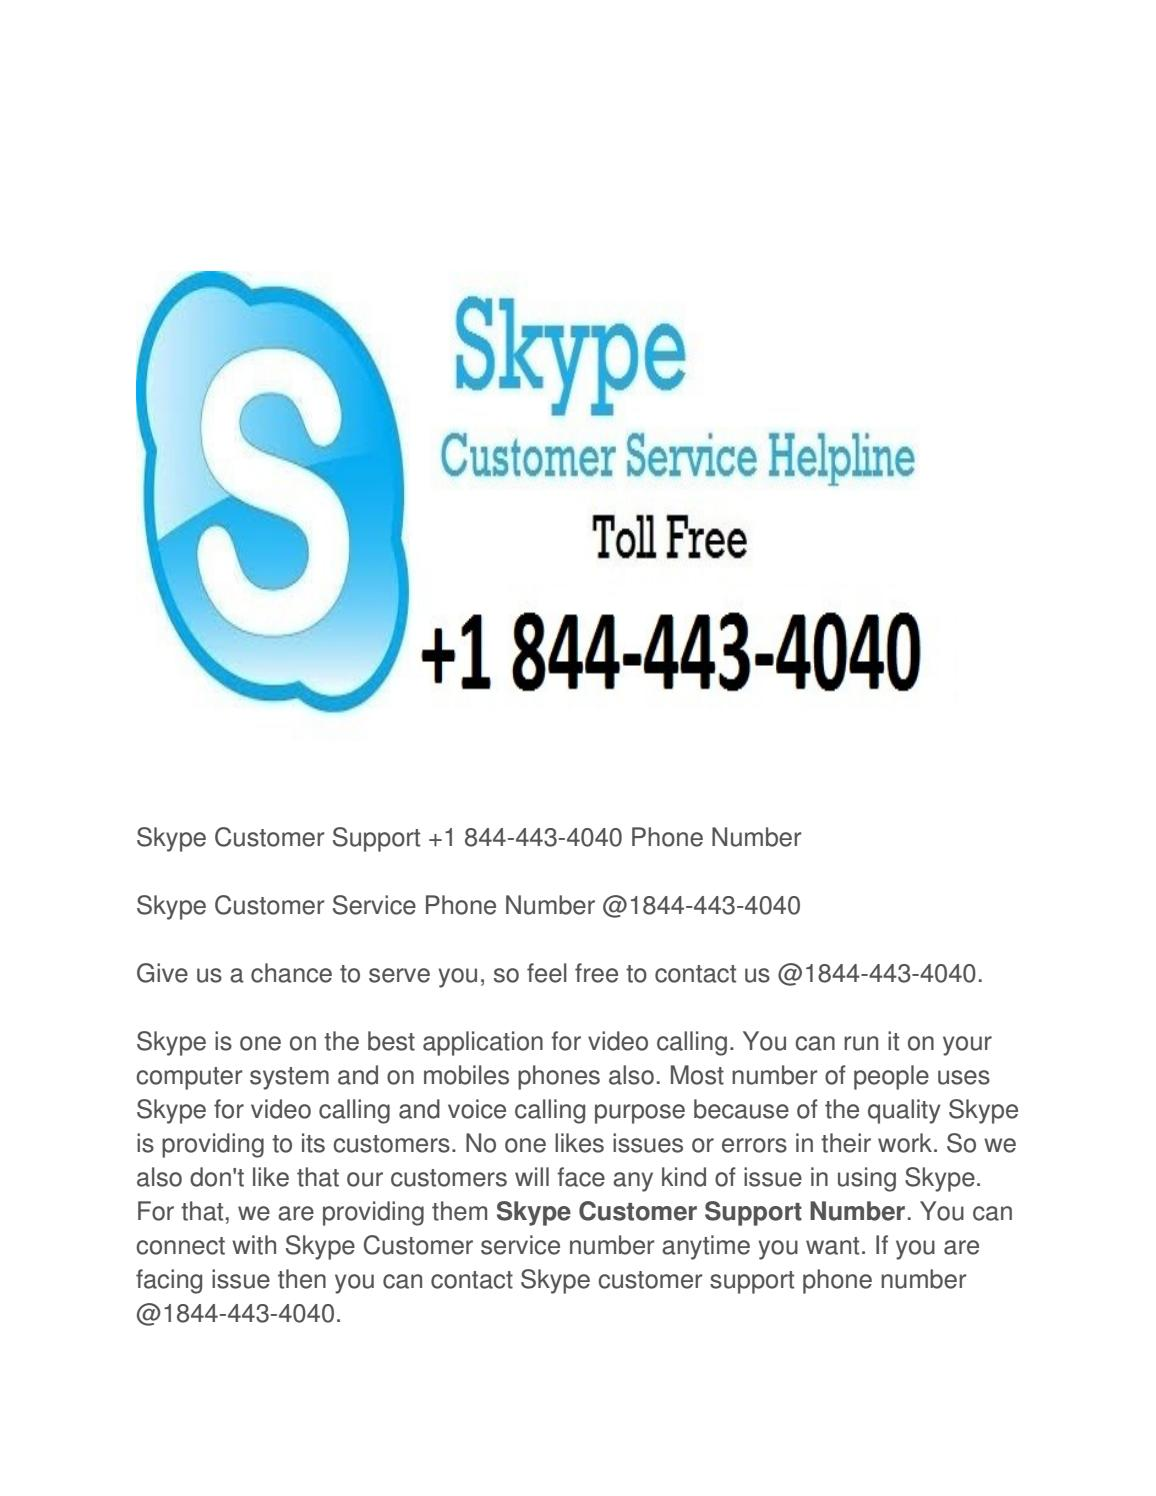 what is skype phone number for customer service